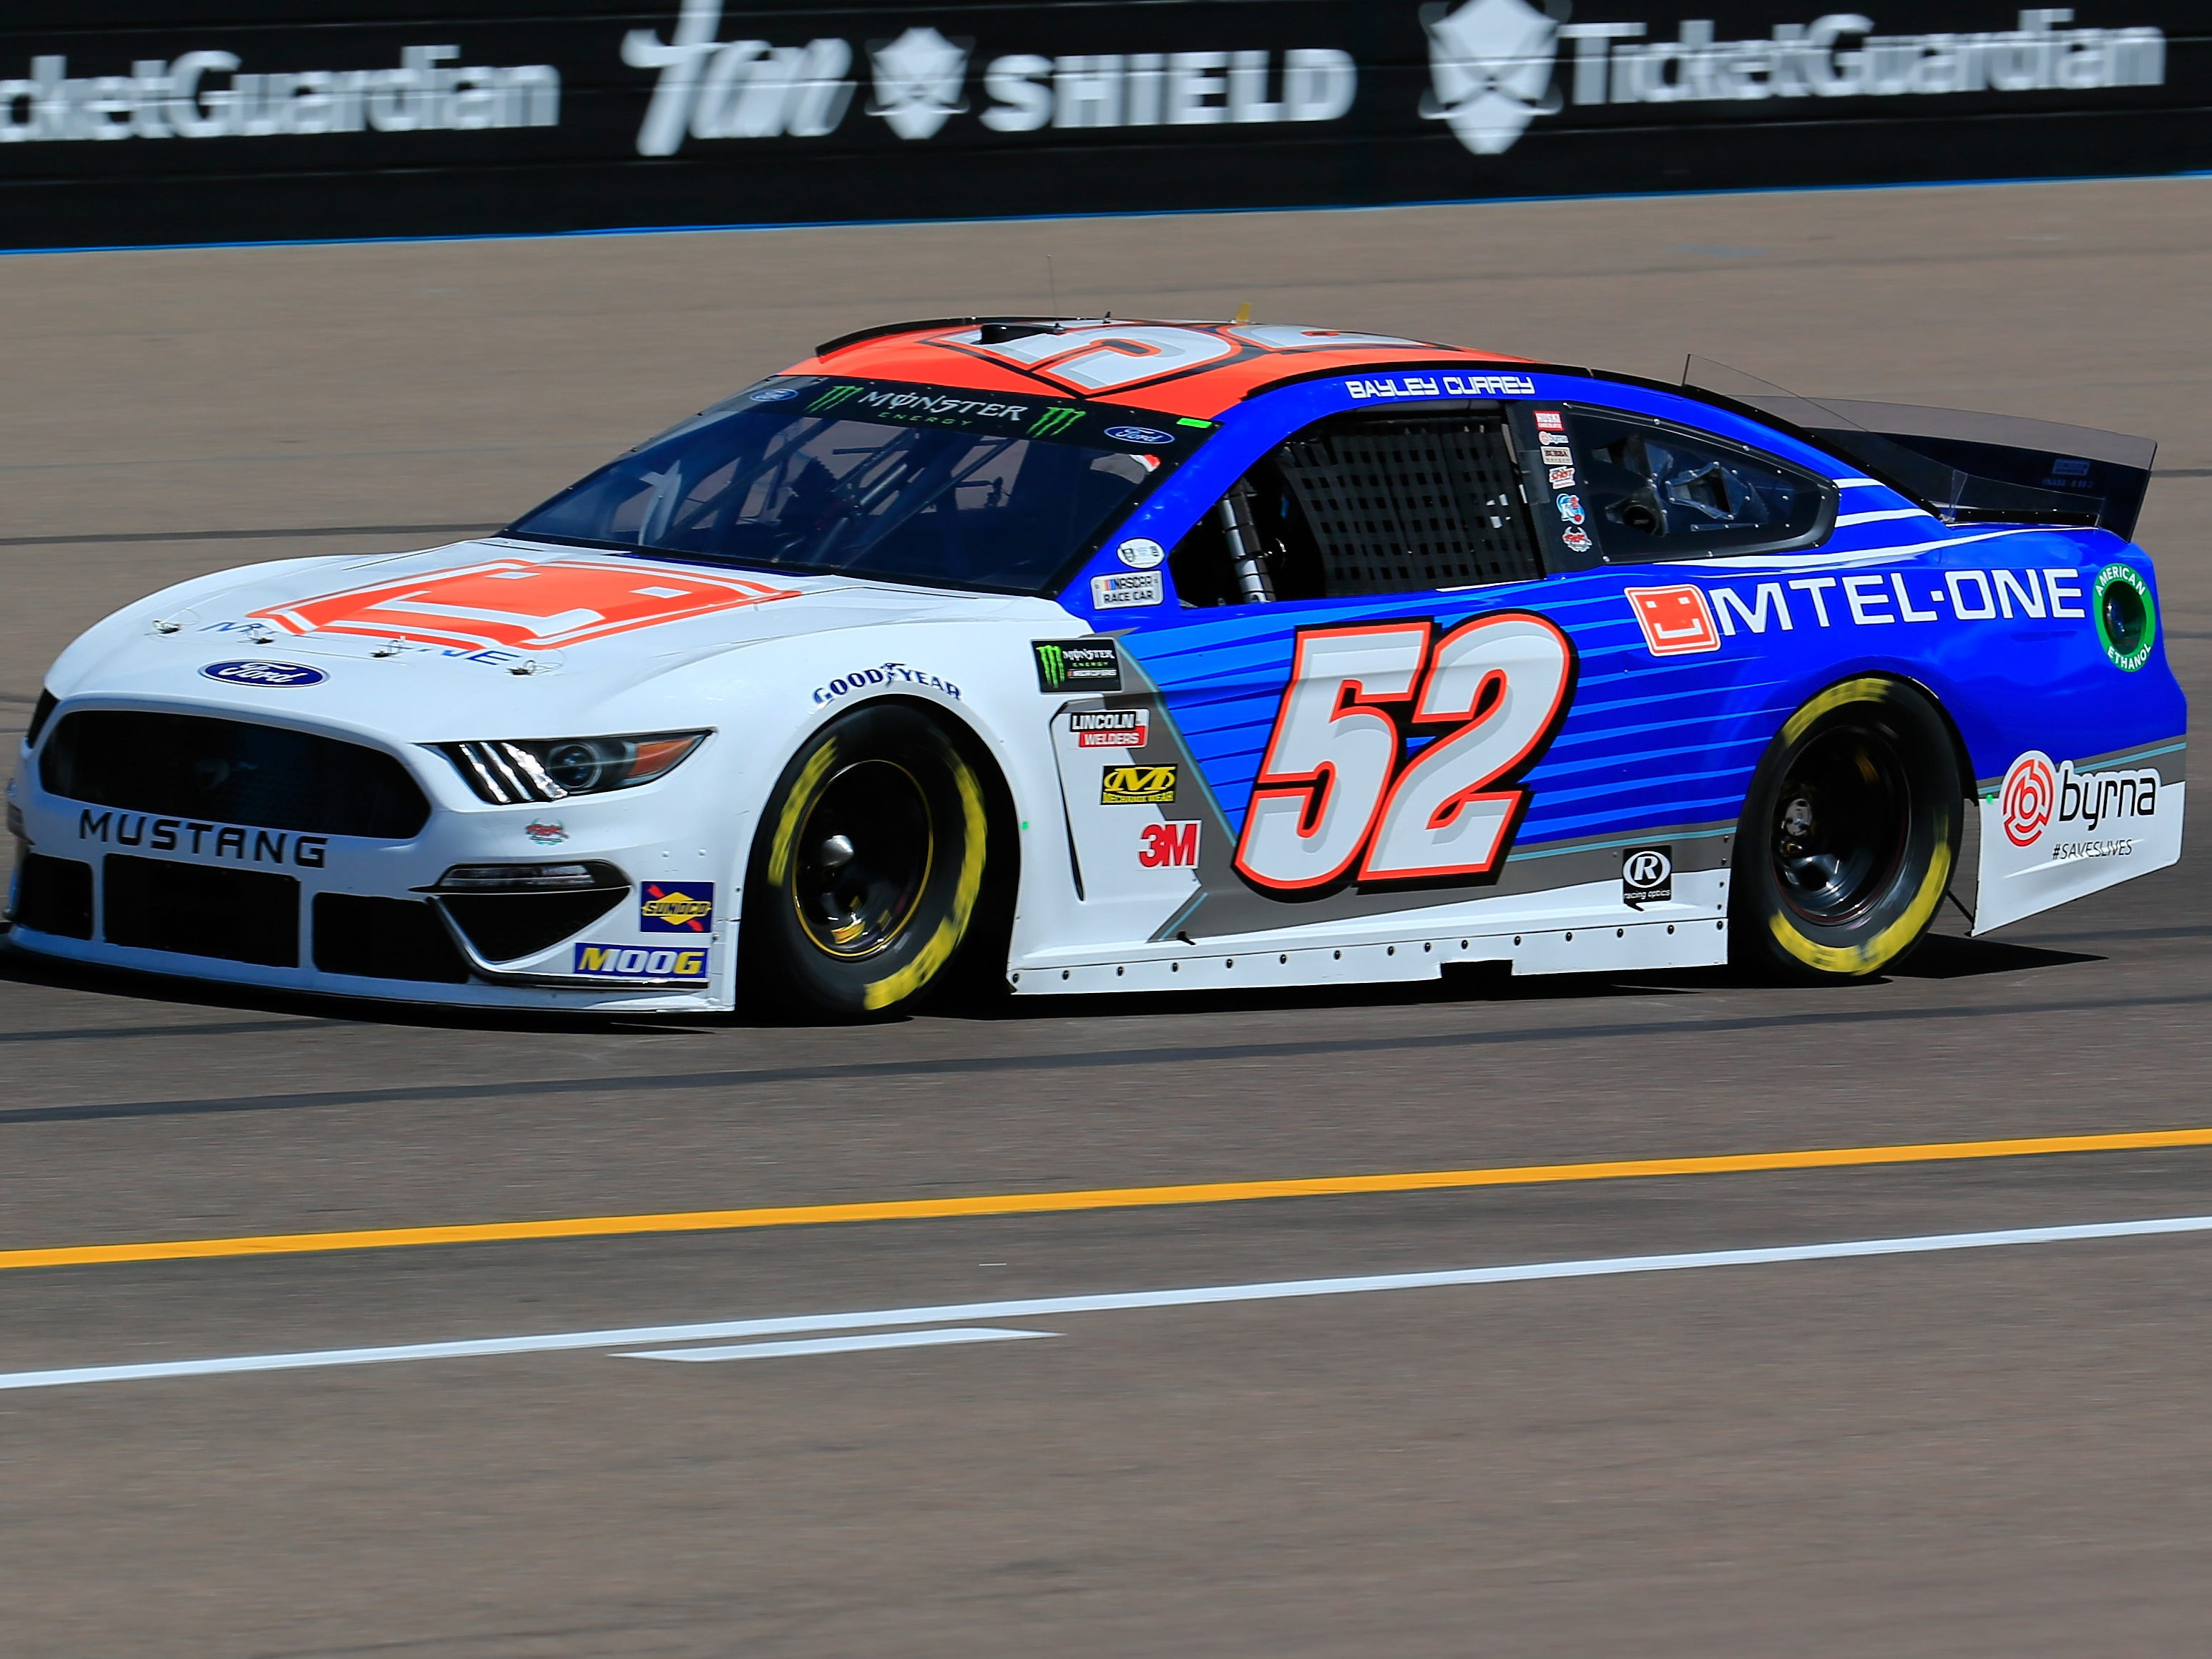 AVONDALE, AZ - MARCH 08: Bayley Currey, driver of the #52 Mtel-One Ford, practices for the Monster Energy NASCAR Cup Series TicketGuardian 500 at ISM Raceway on March 8, 2019 in Avondale, Arizona.